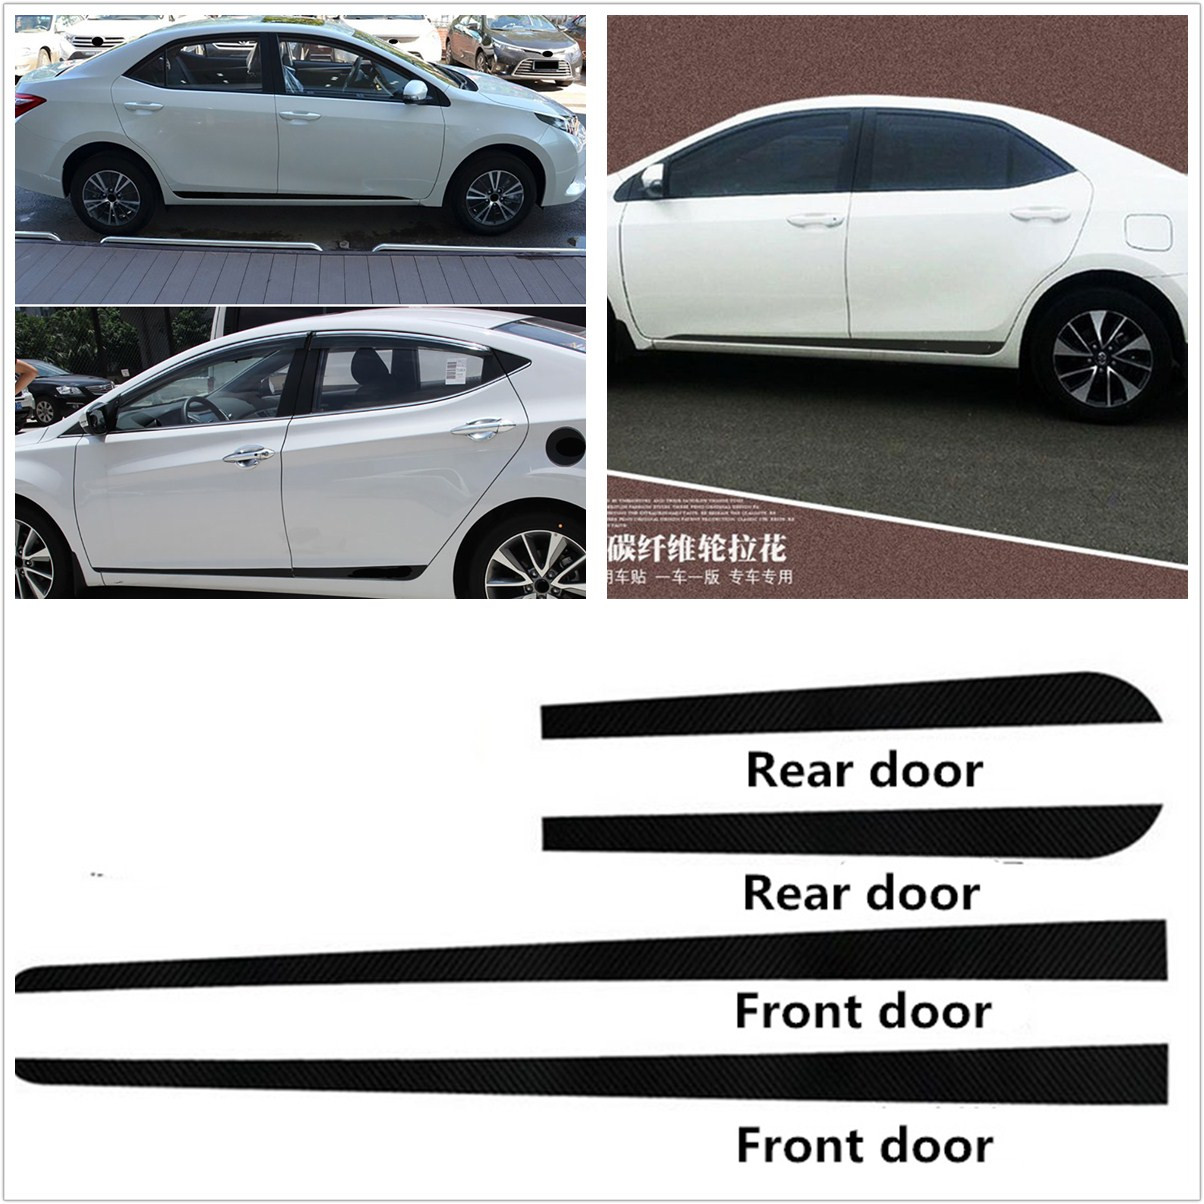 Details about 4xcarbon fiber car side skirt fender protection sticker for 14 17 toyota corolla